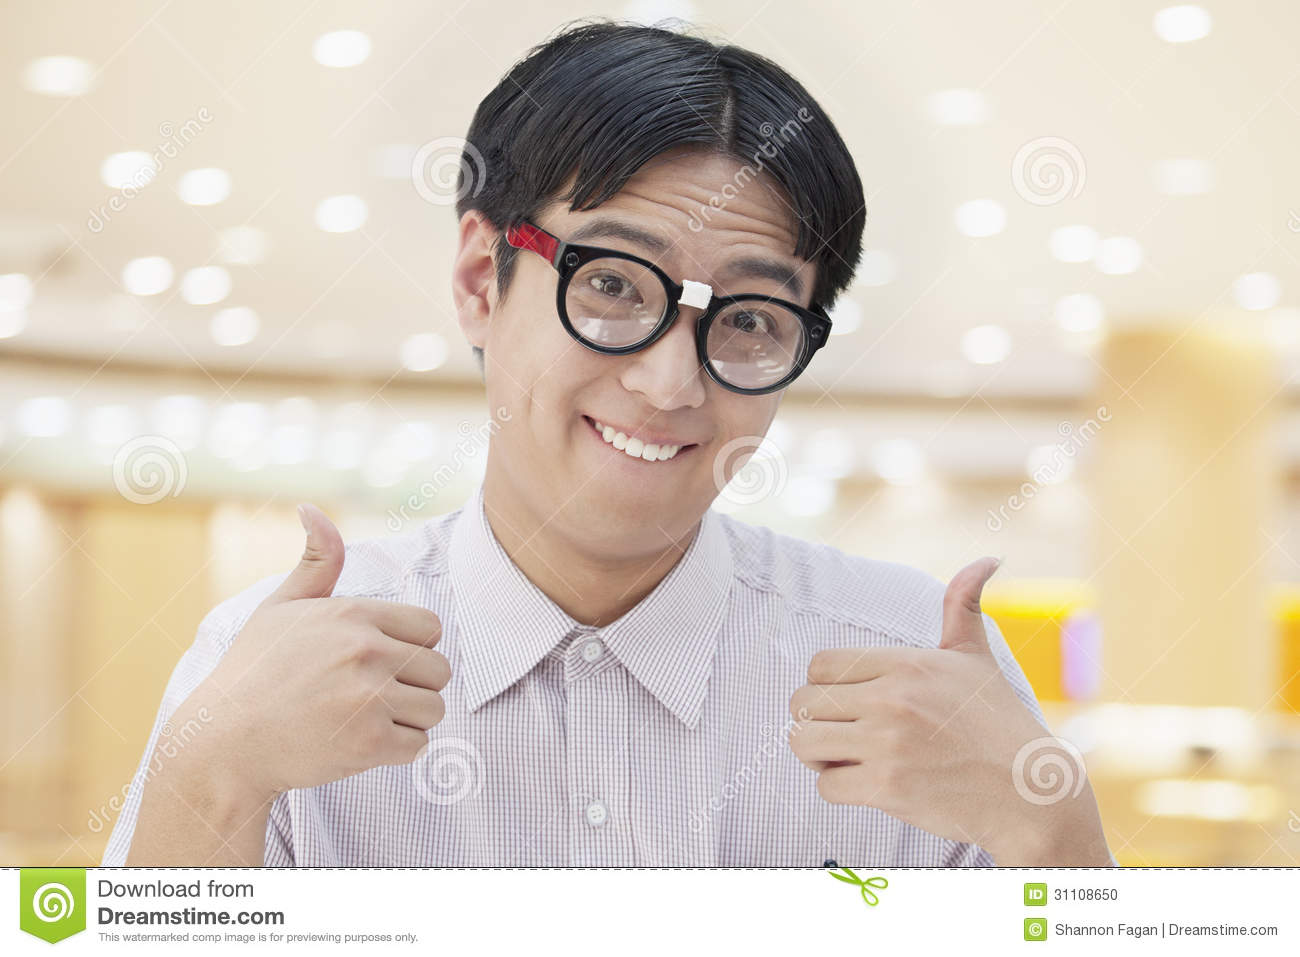 Nerdy Man With Glasses Giving Thumbs Up Looking At Camera